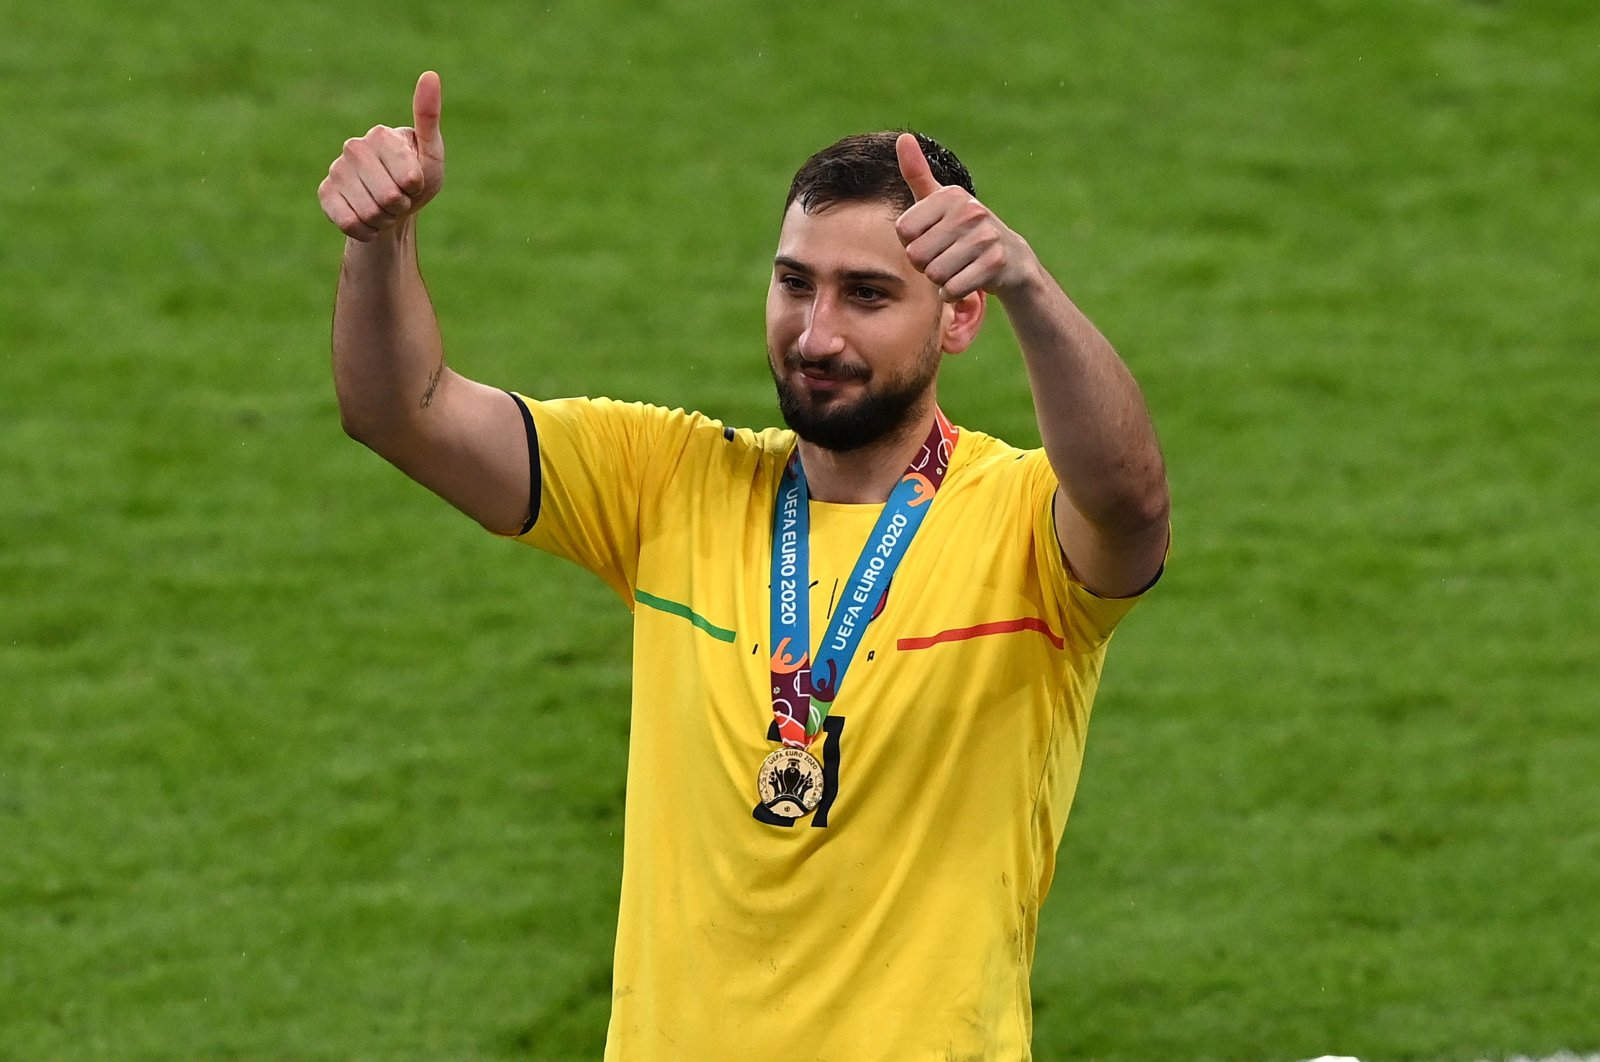 Italy goalkeeper Gianluigi Donnarumma gives the thumbs up after the UEFA Euro 2020 final against England in London, England, July 11, 2021. (EPA Photo)